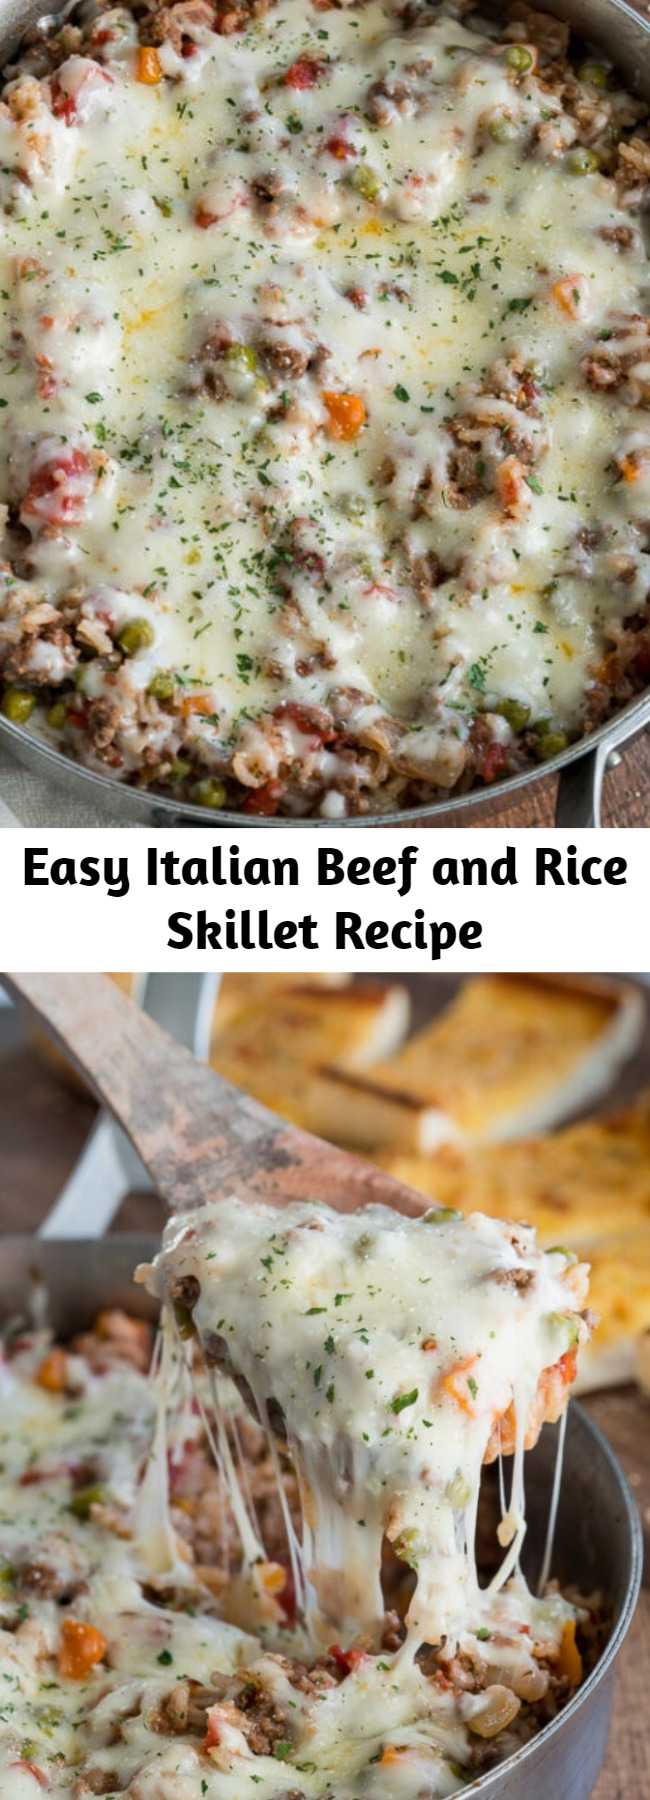 Easy Italian Beef and Rice Skillet Recipe - This hearty and cheesy Italian Beef and Rice Skillet is ready in less than 30 minutes for an easy weeknight dinner the whole family will love!